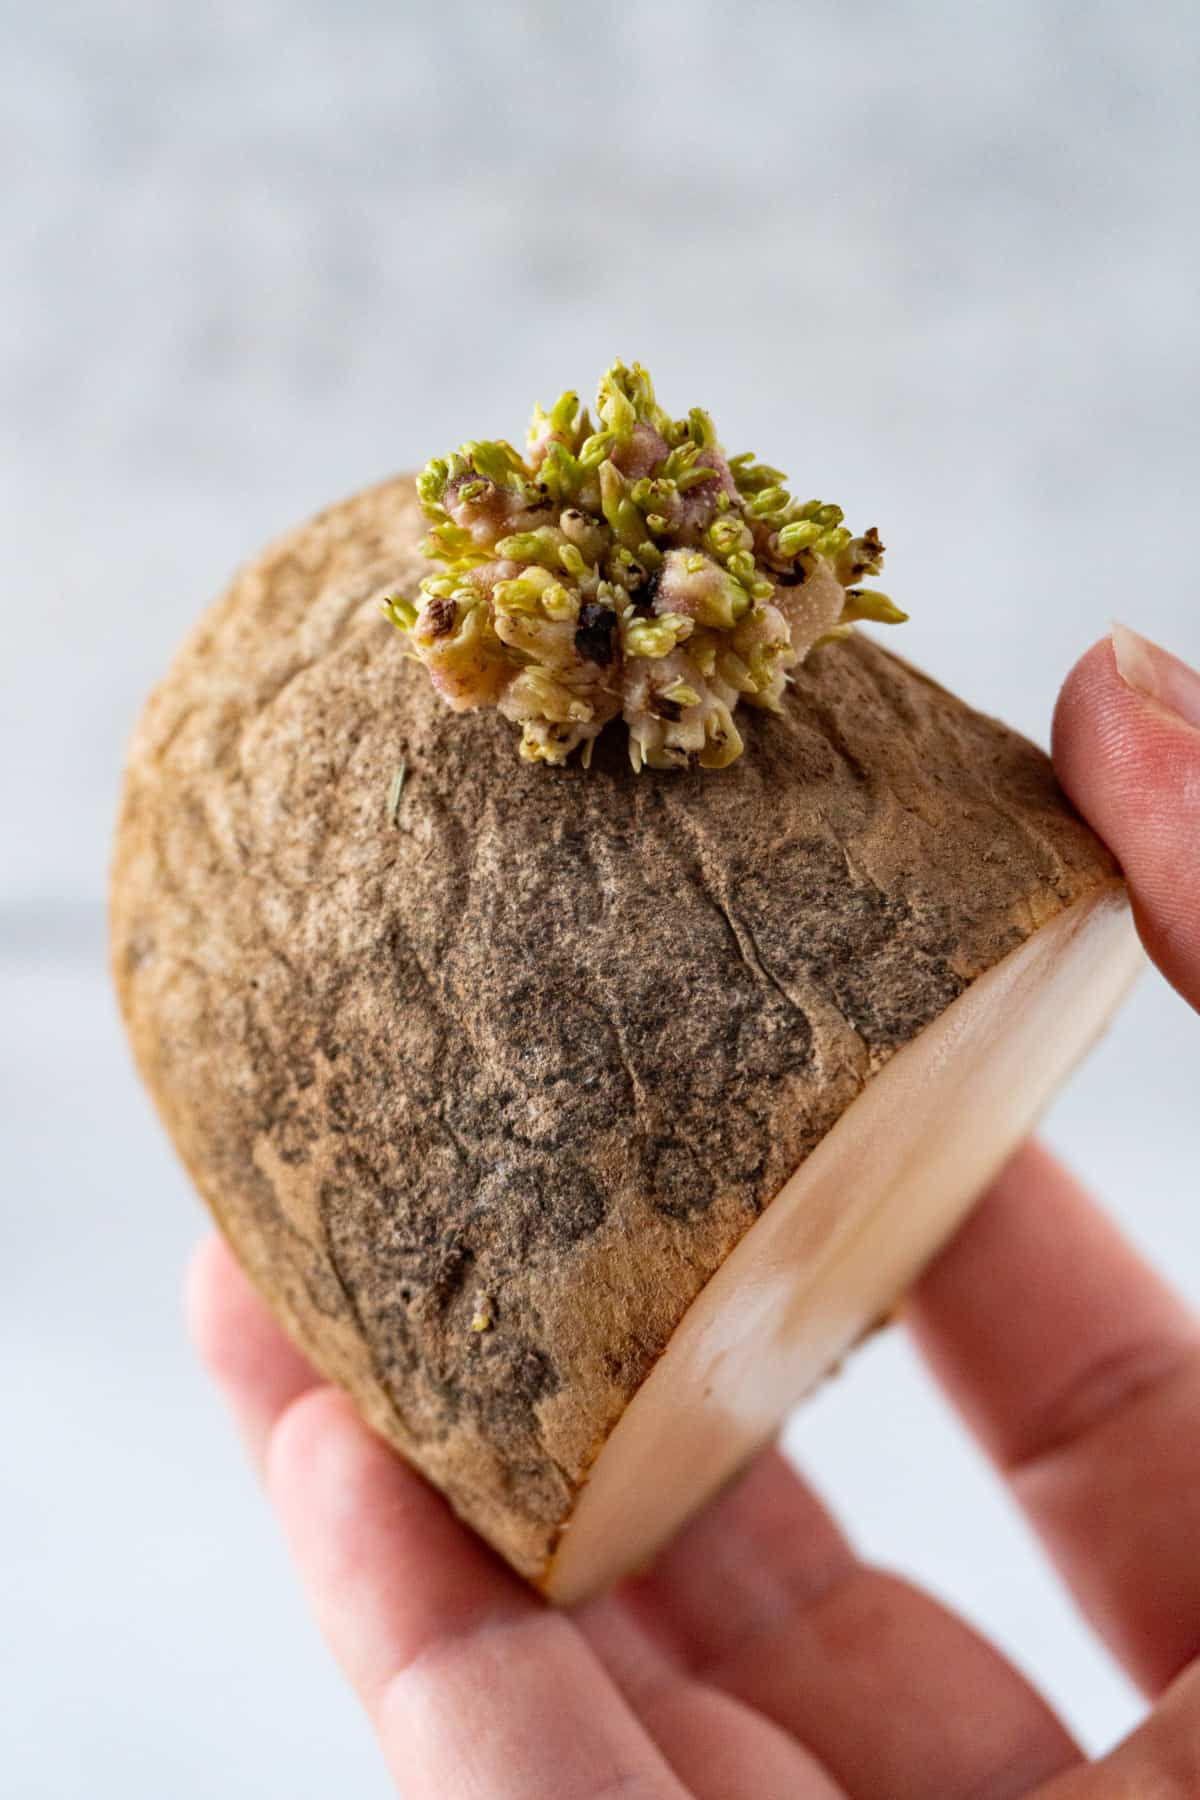 holding half a sprouted potato in hand-